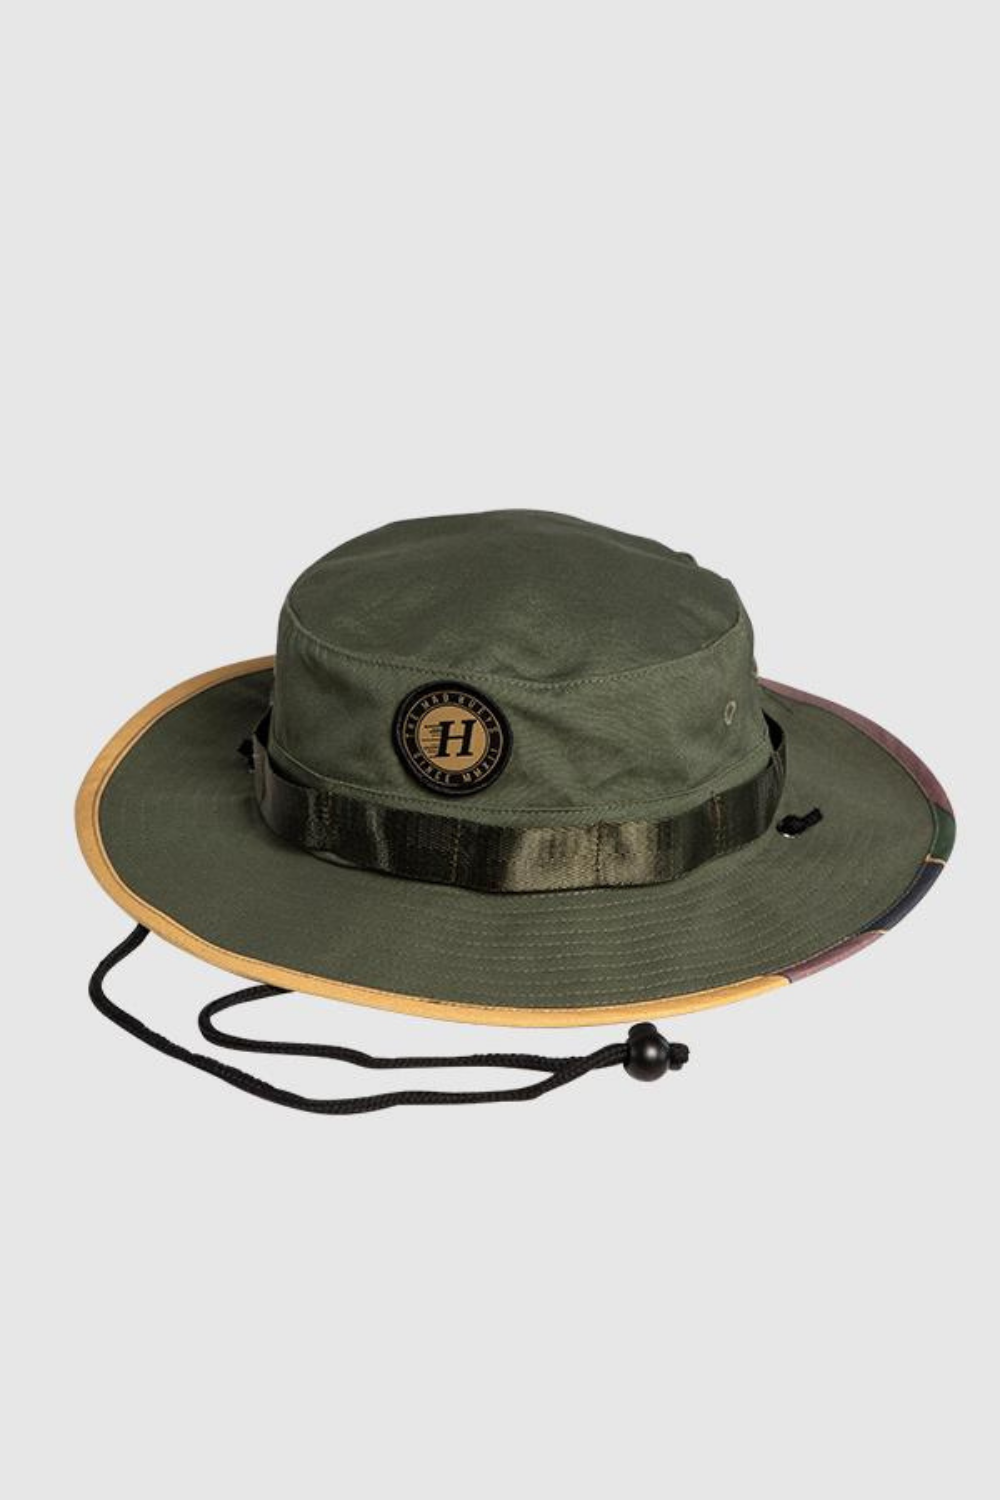 The Mad Hueys Flying H Fishing Wide Brim Hat